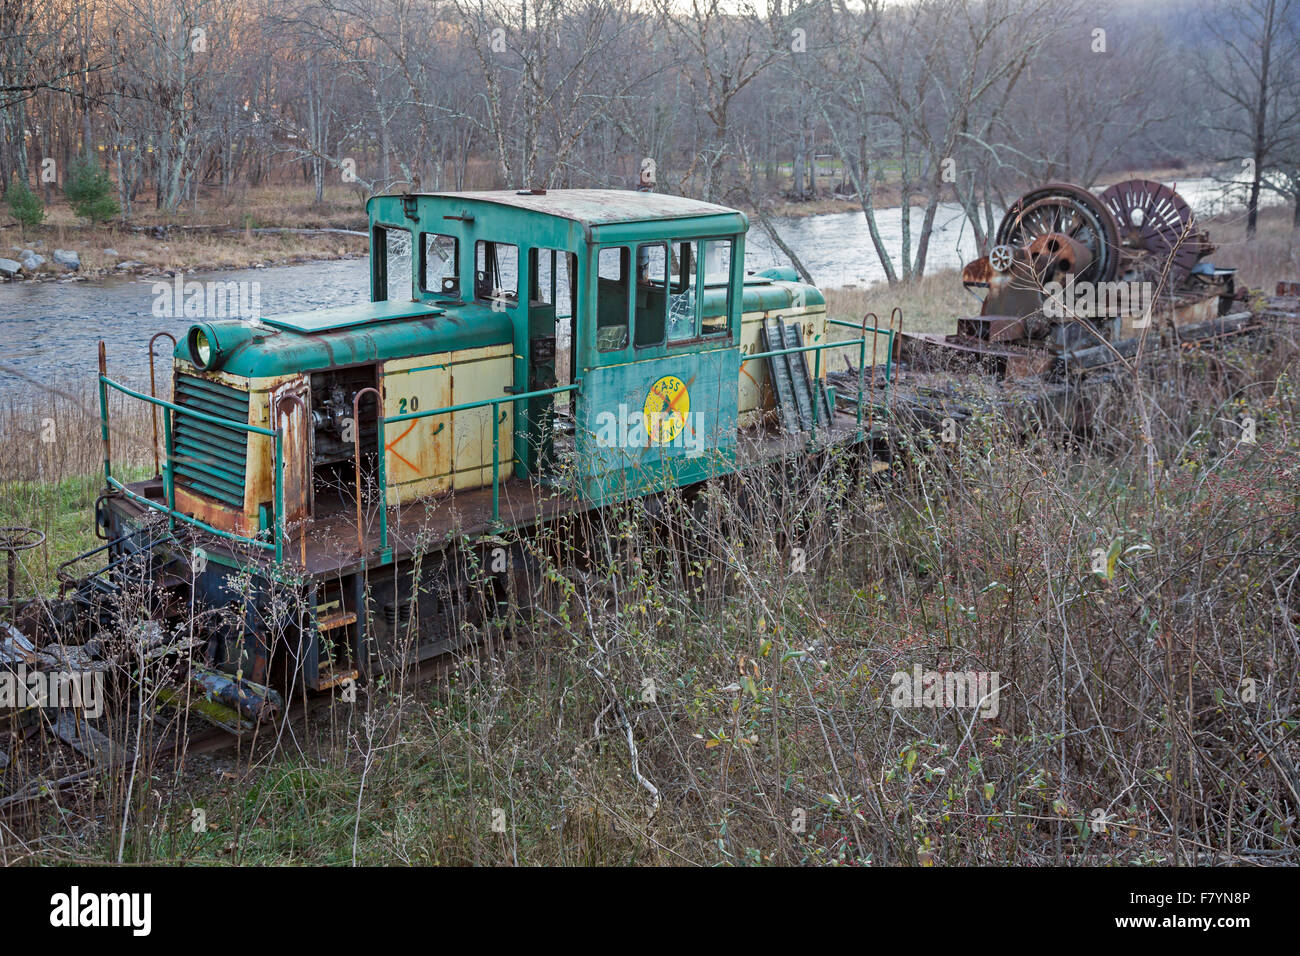 Cass, West Virginia - Railroad equipment that is no longer used at Cass Scenic Railroad State Park. - Stock Image